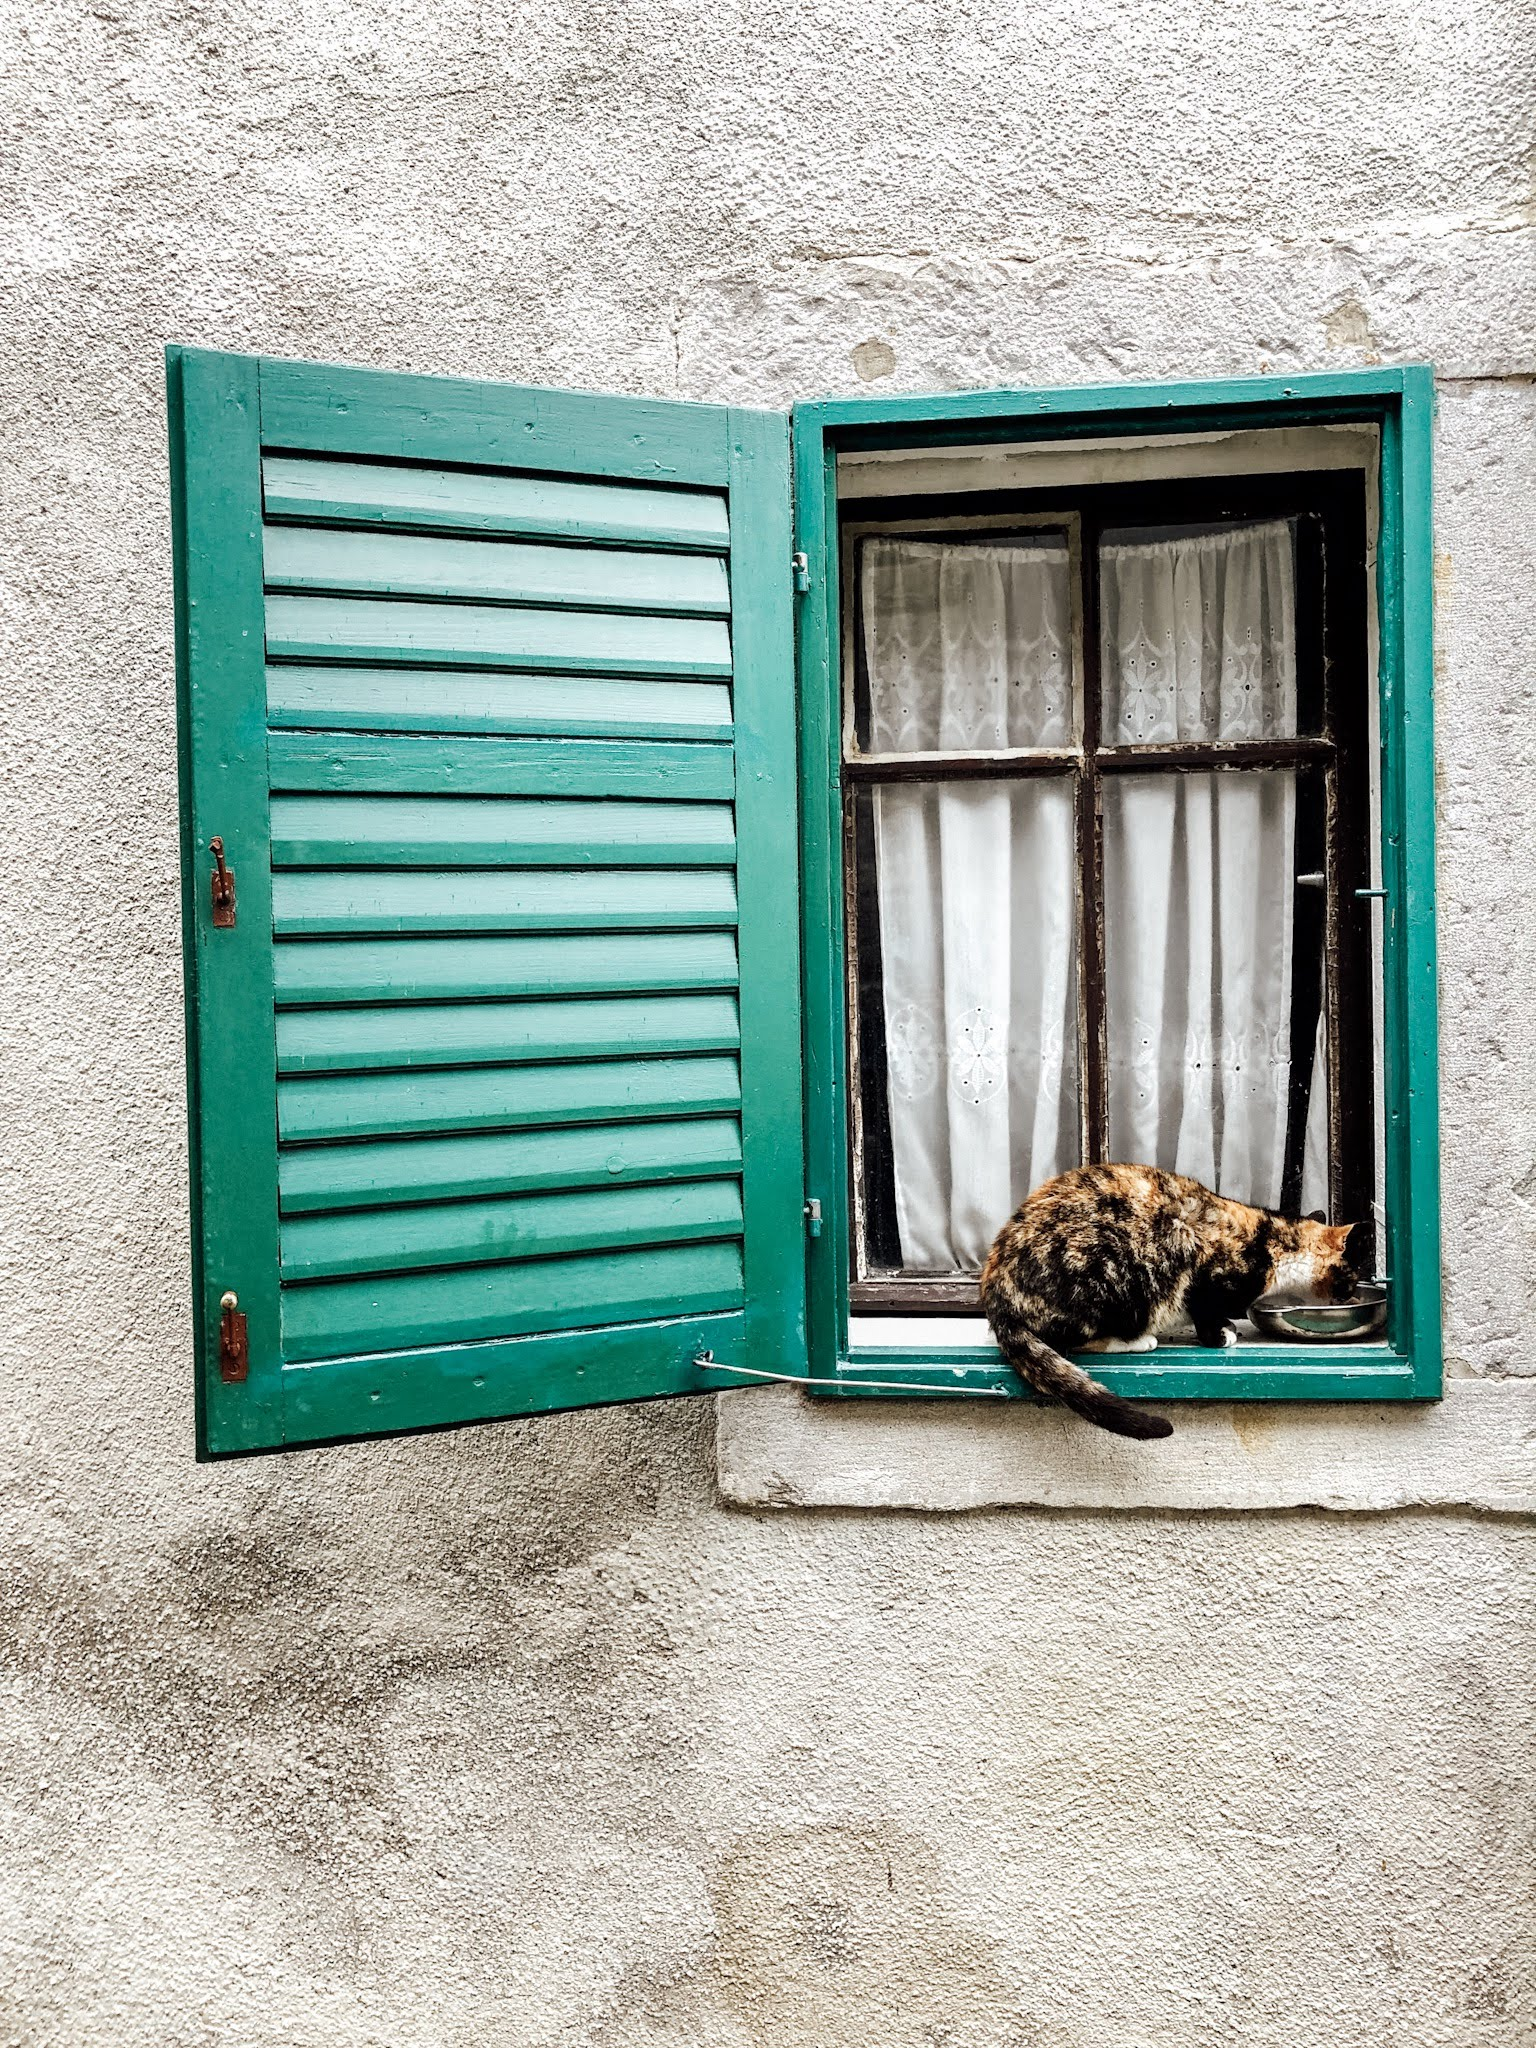 Cat in Hum, Istria, Croatia